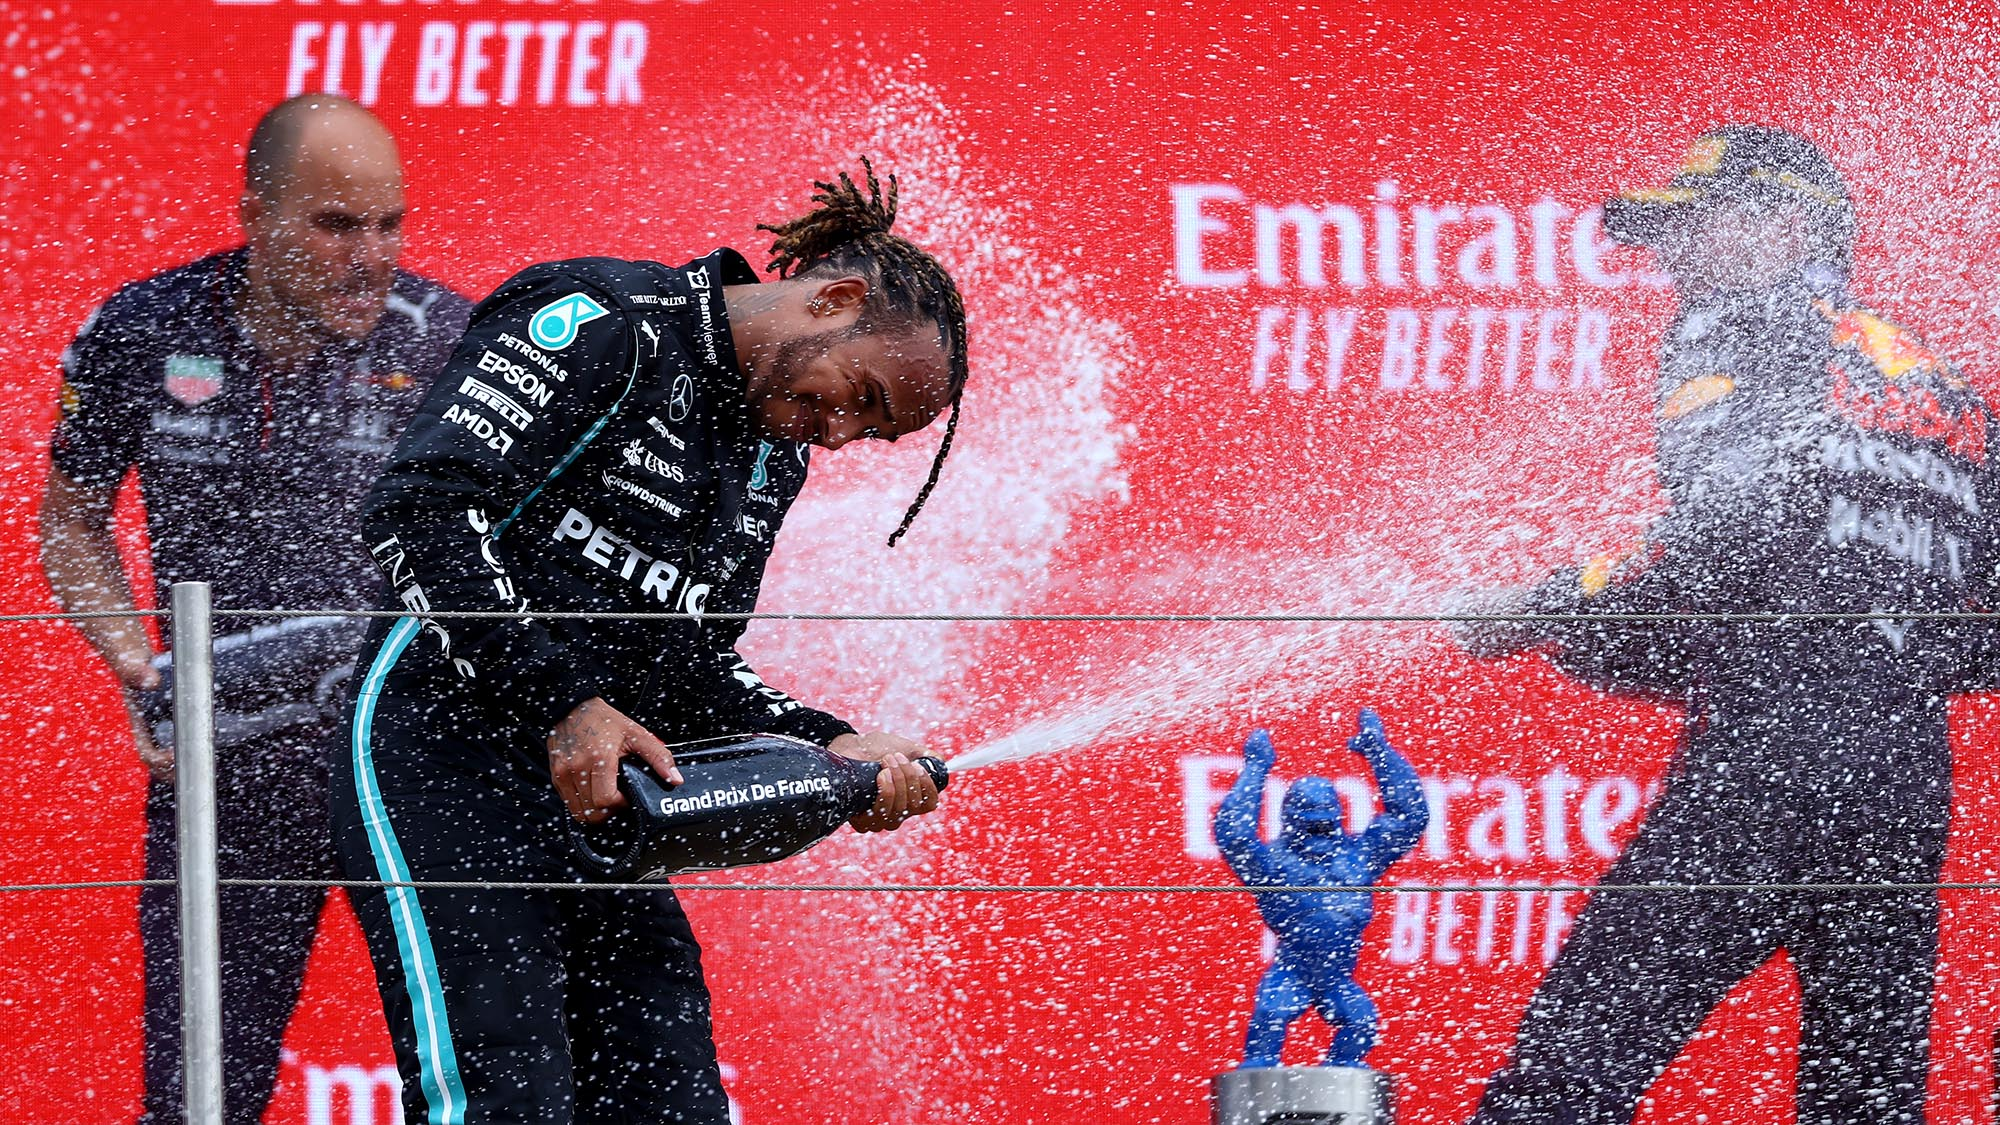 Lewis Hamilton and Max Verstappen spray champ[agne on the podium at the 2021 French Grand Prix